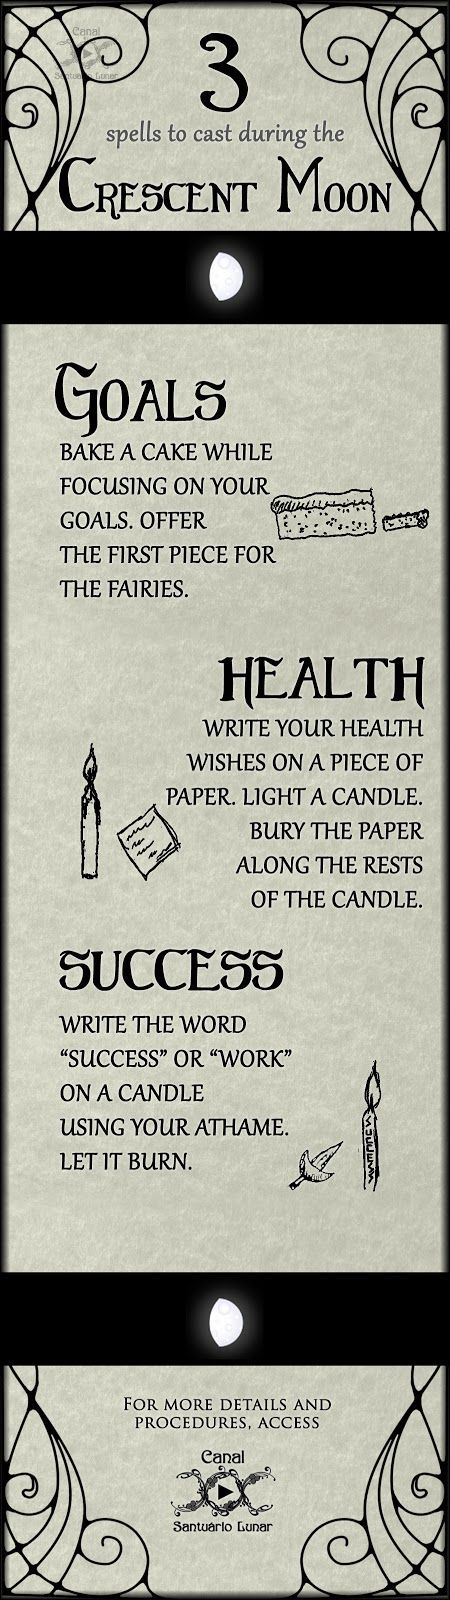 3 spells to cast during the Crescent Moon | Wicca, Witchcraft, Magic, Witch, Pagan